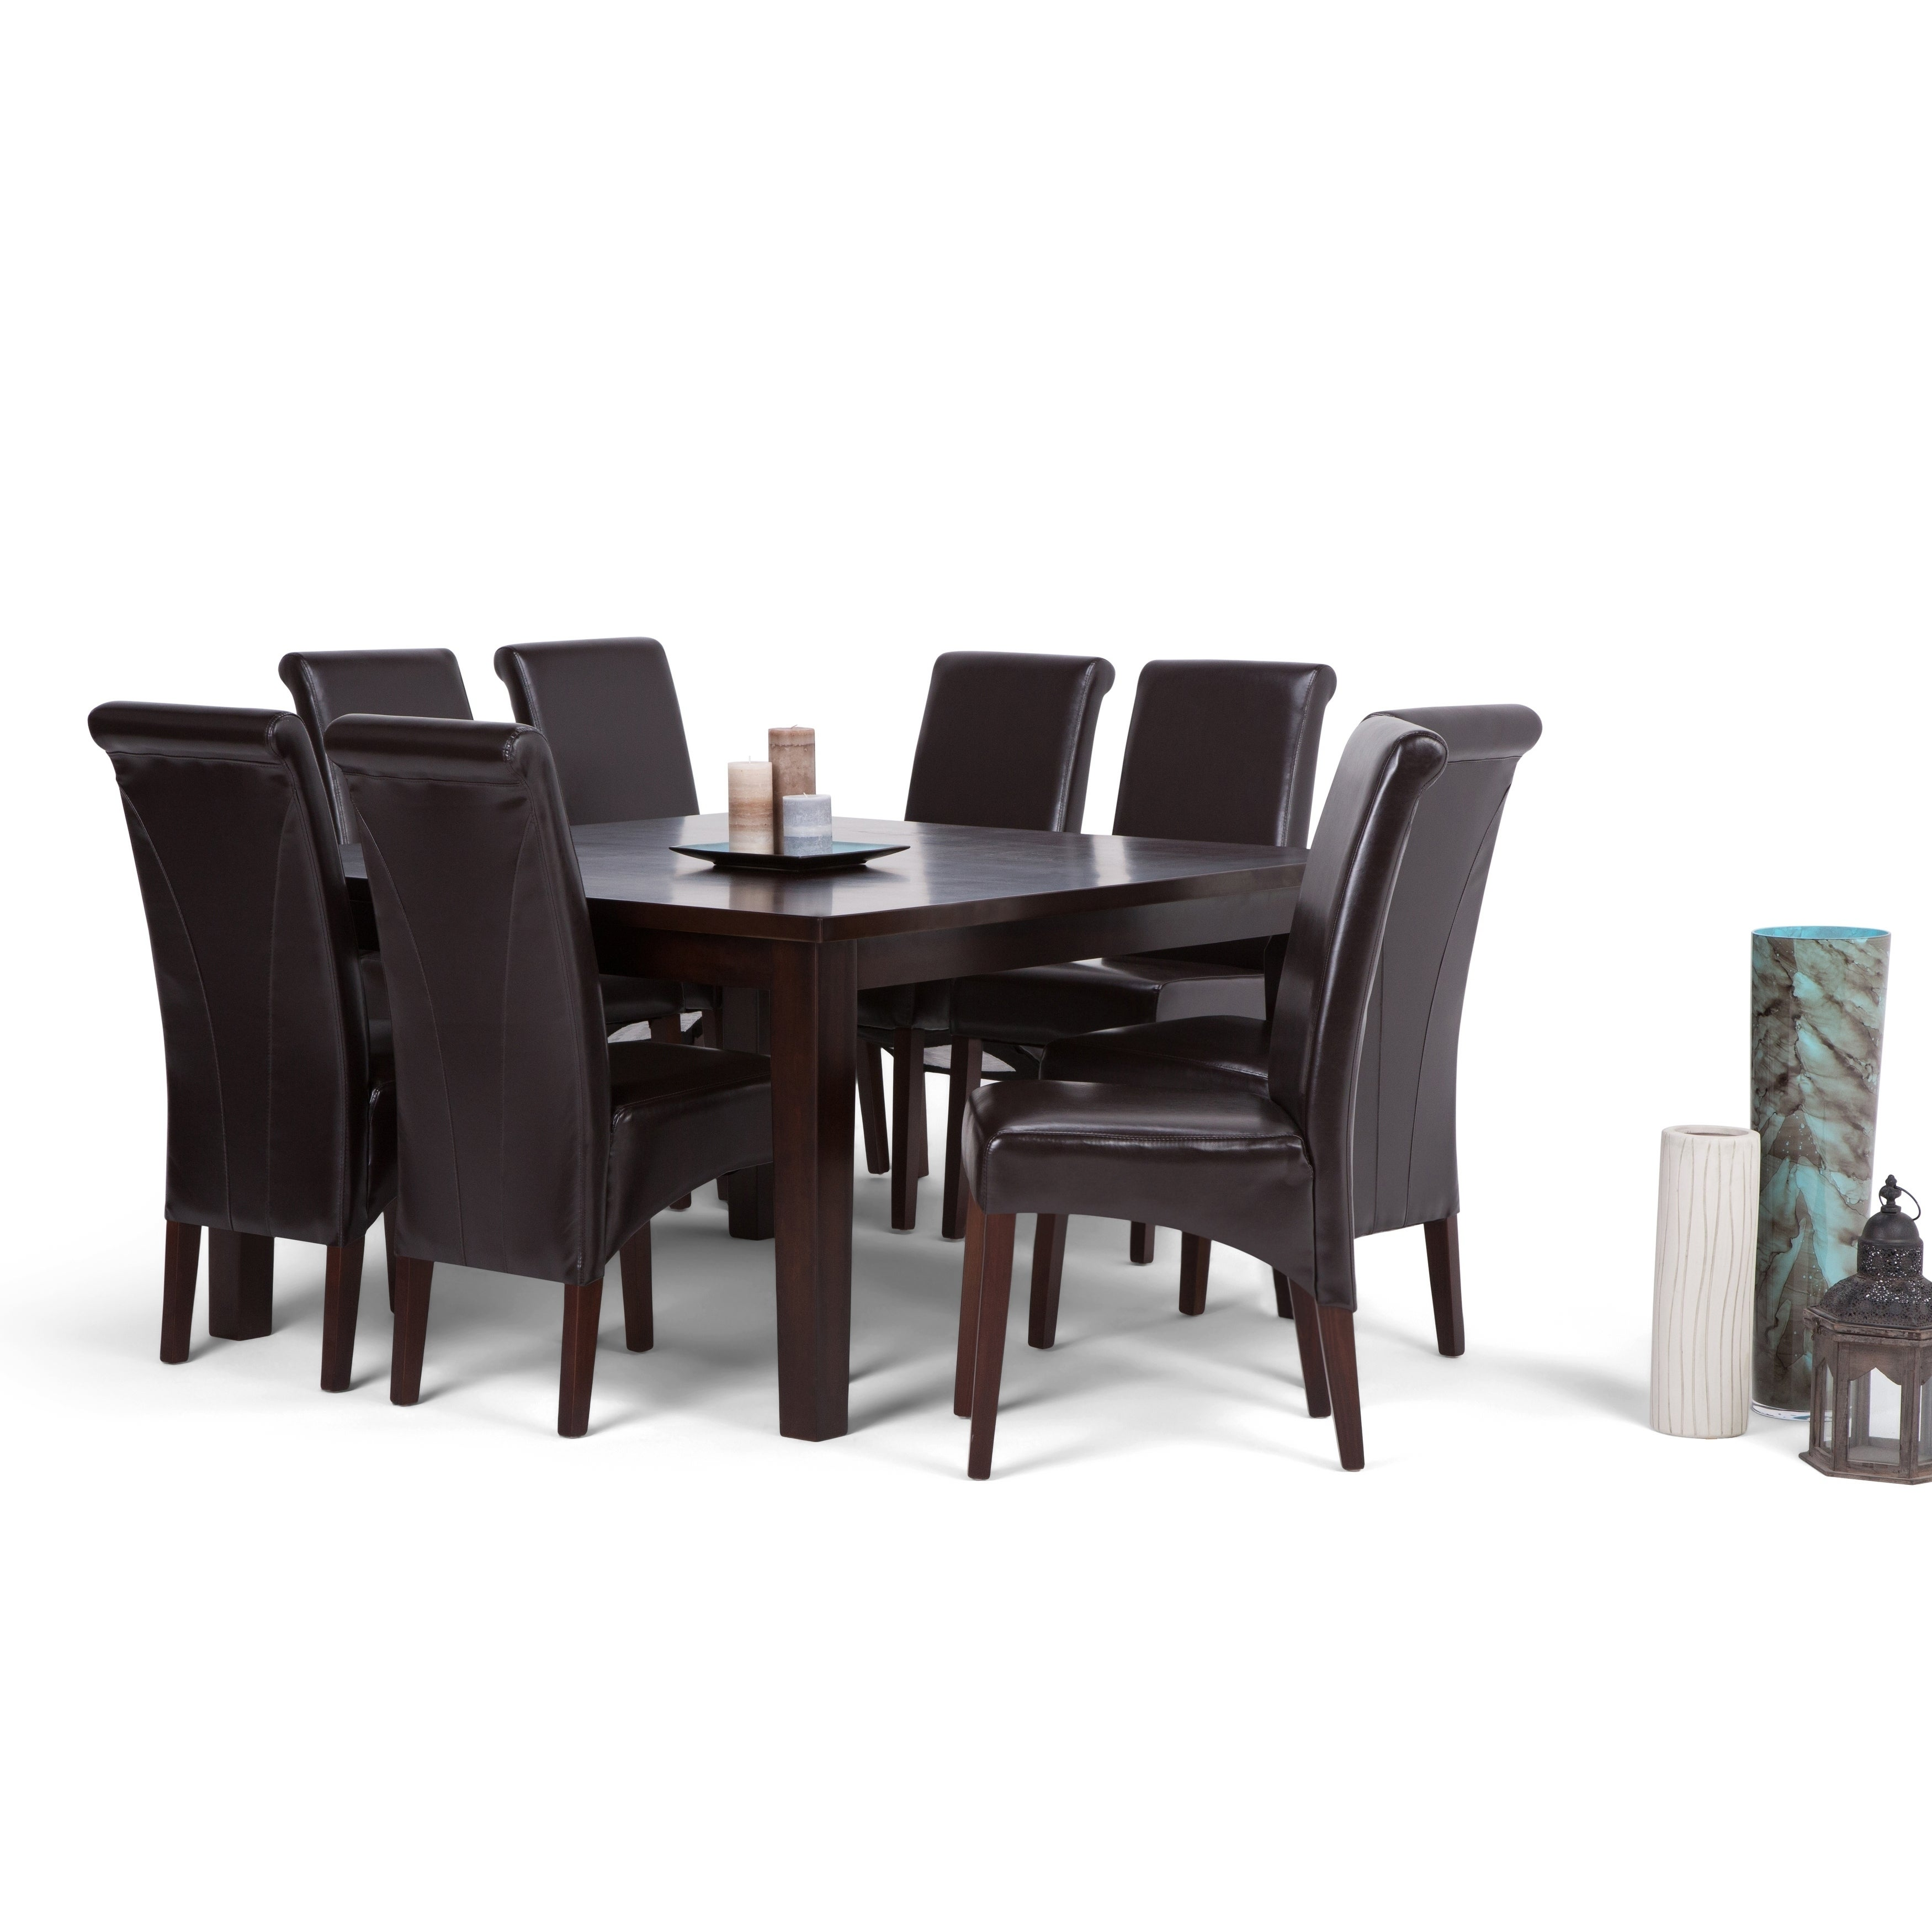 WYNDENHALL Franklin 9 Piece Dining Set   Free Shipping Today   Overstock    17682010